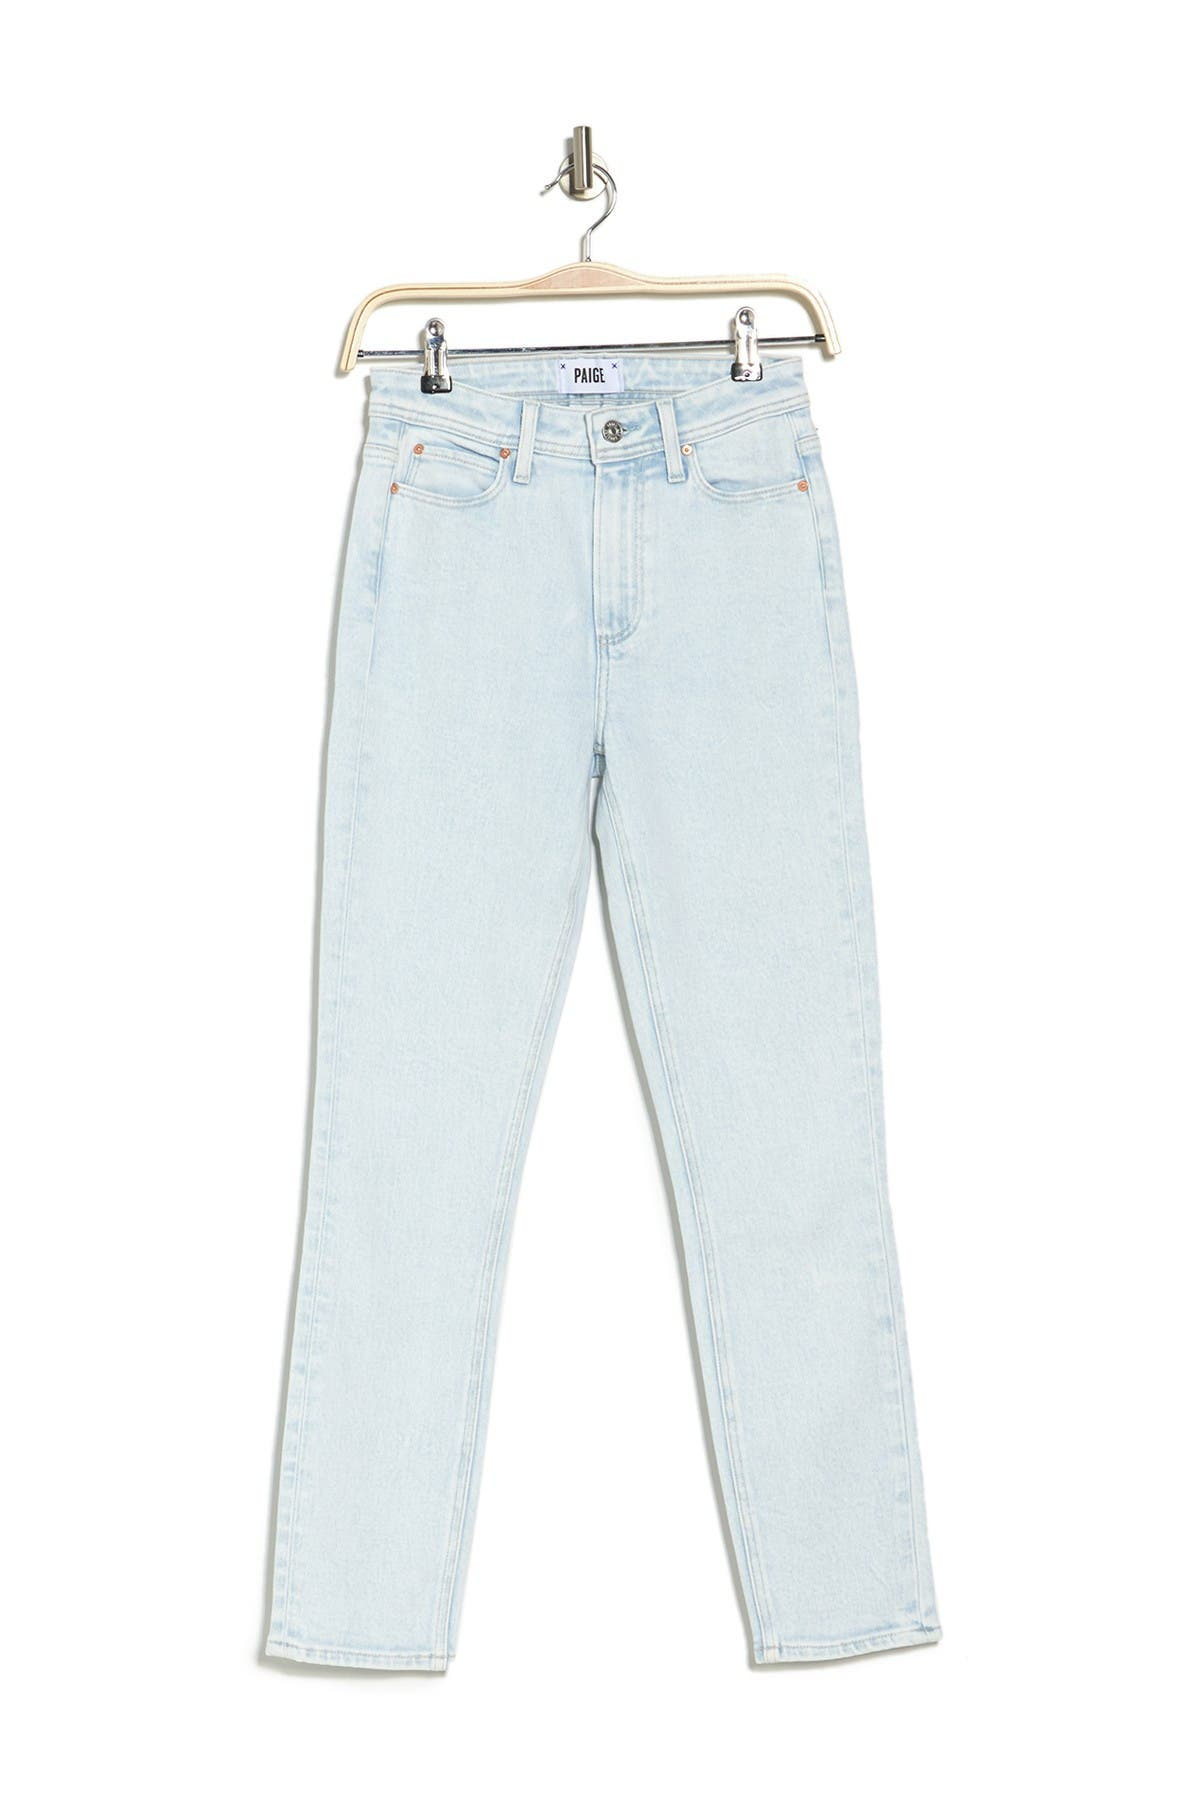 Image of PAIGE Hoxton Ankle Jeans